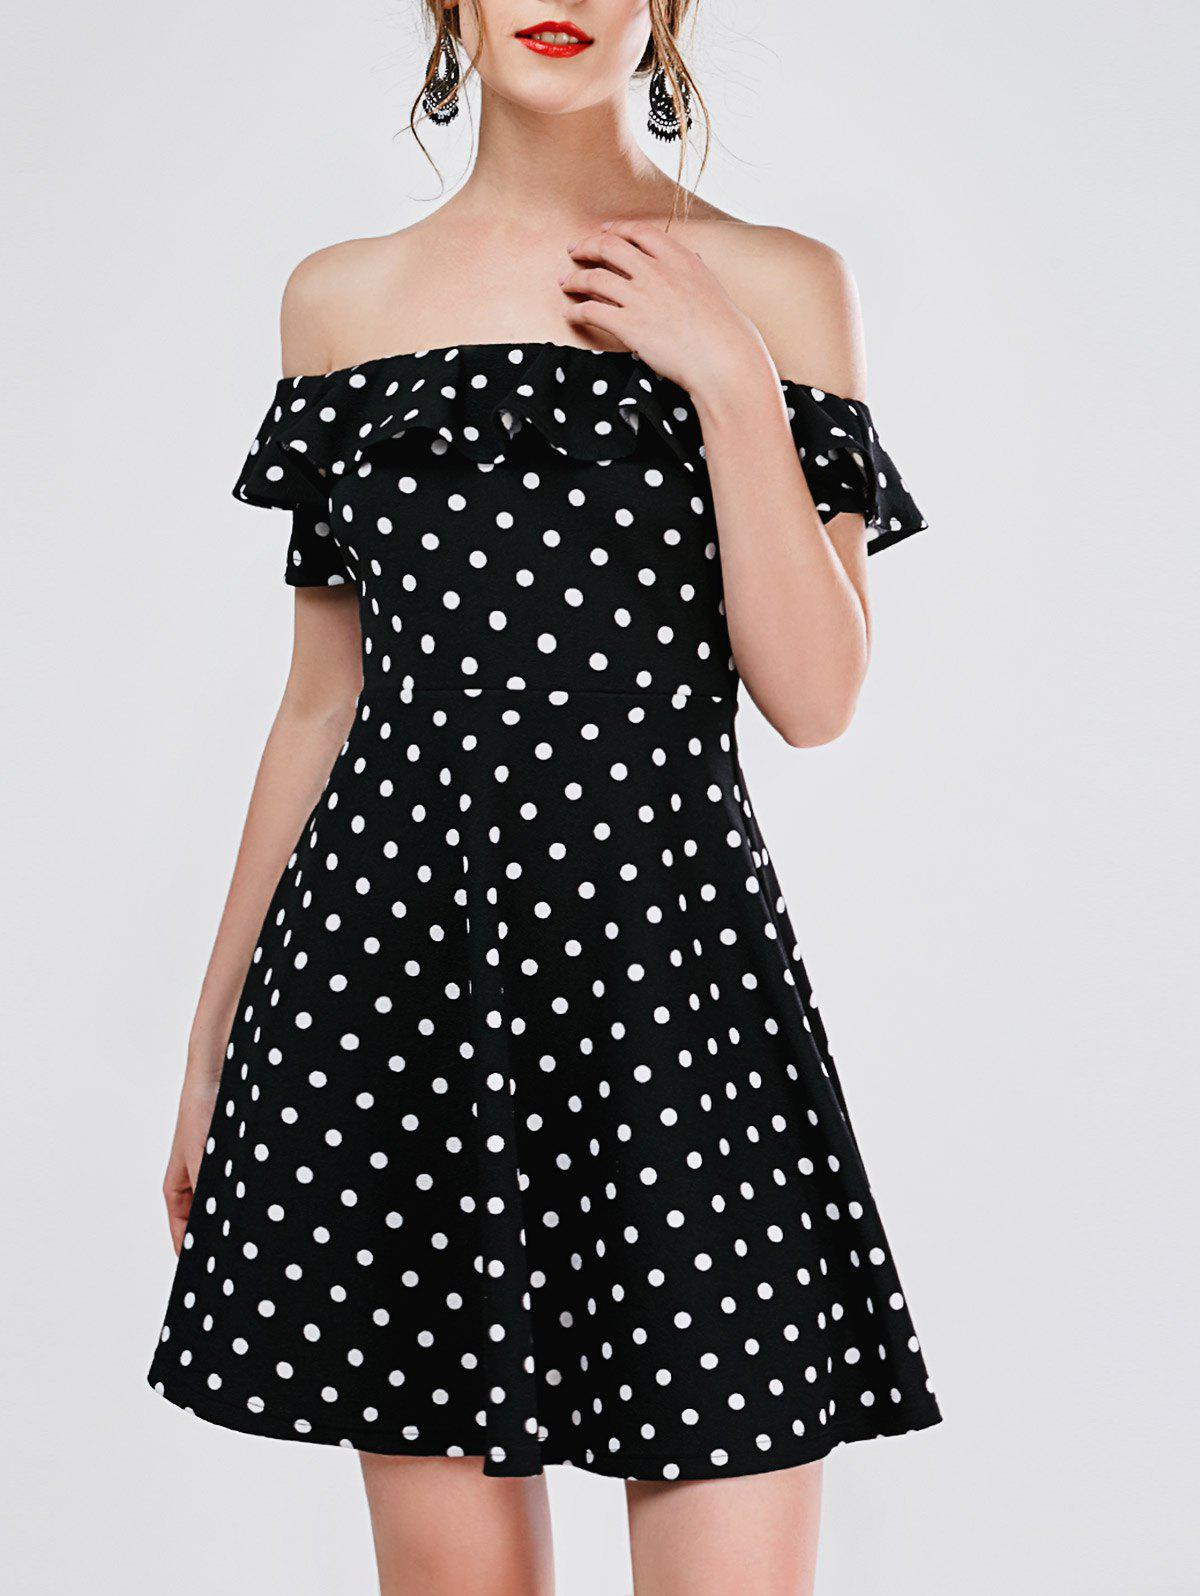 Polka Dot Mini Off The Shoulder Vestido Skater Dress - BLACK S